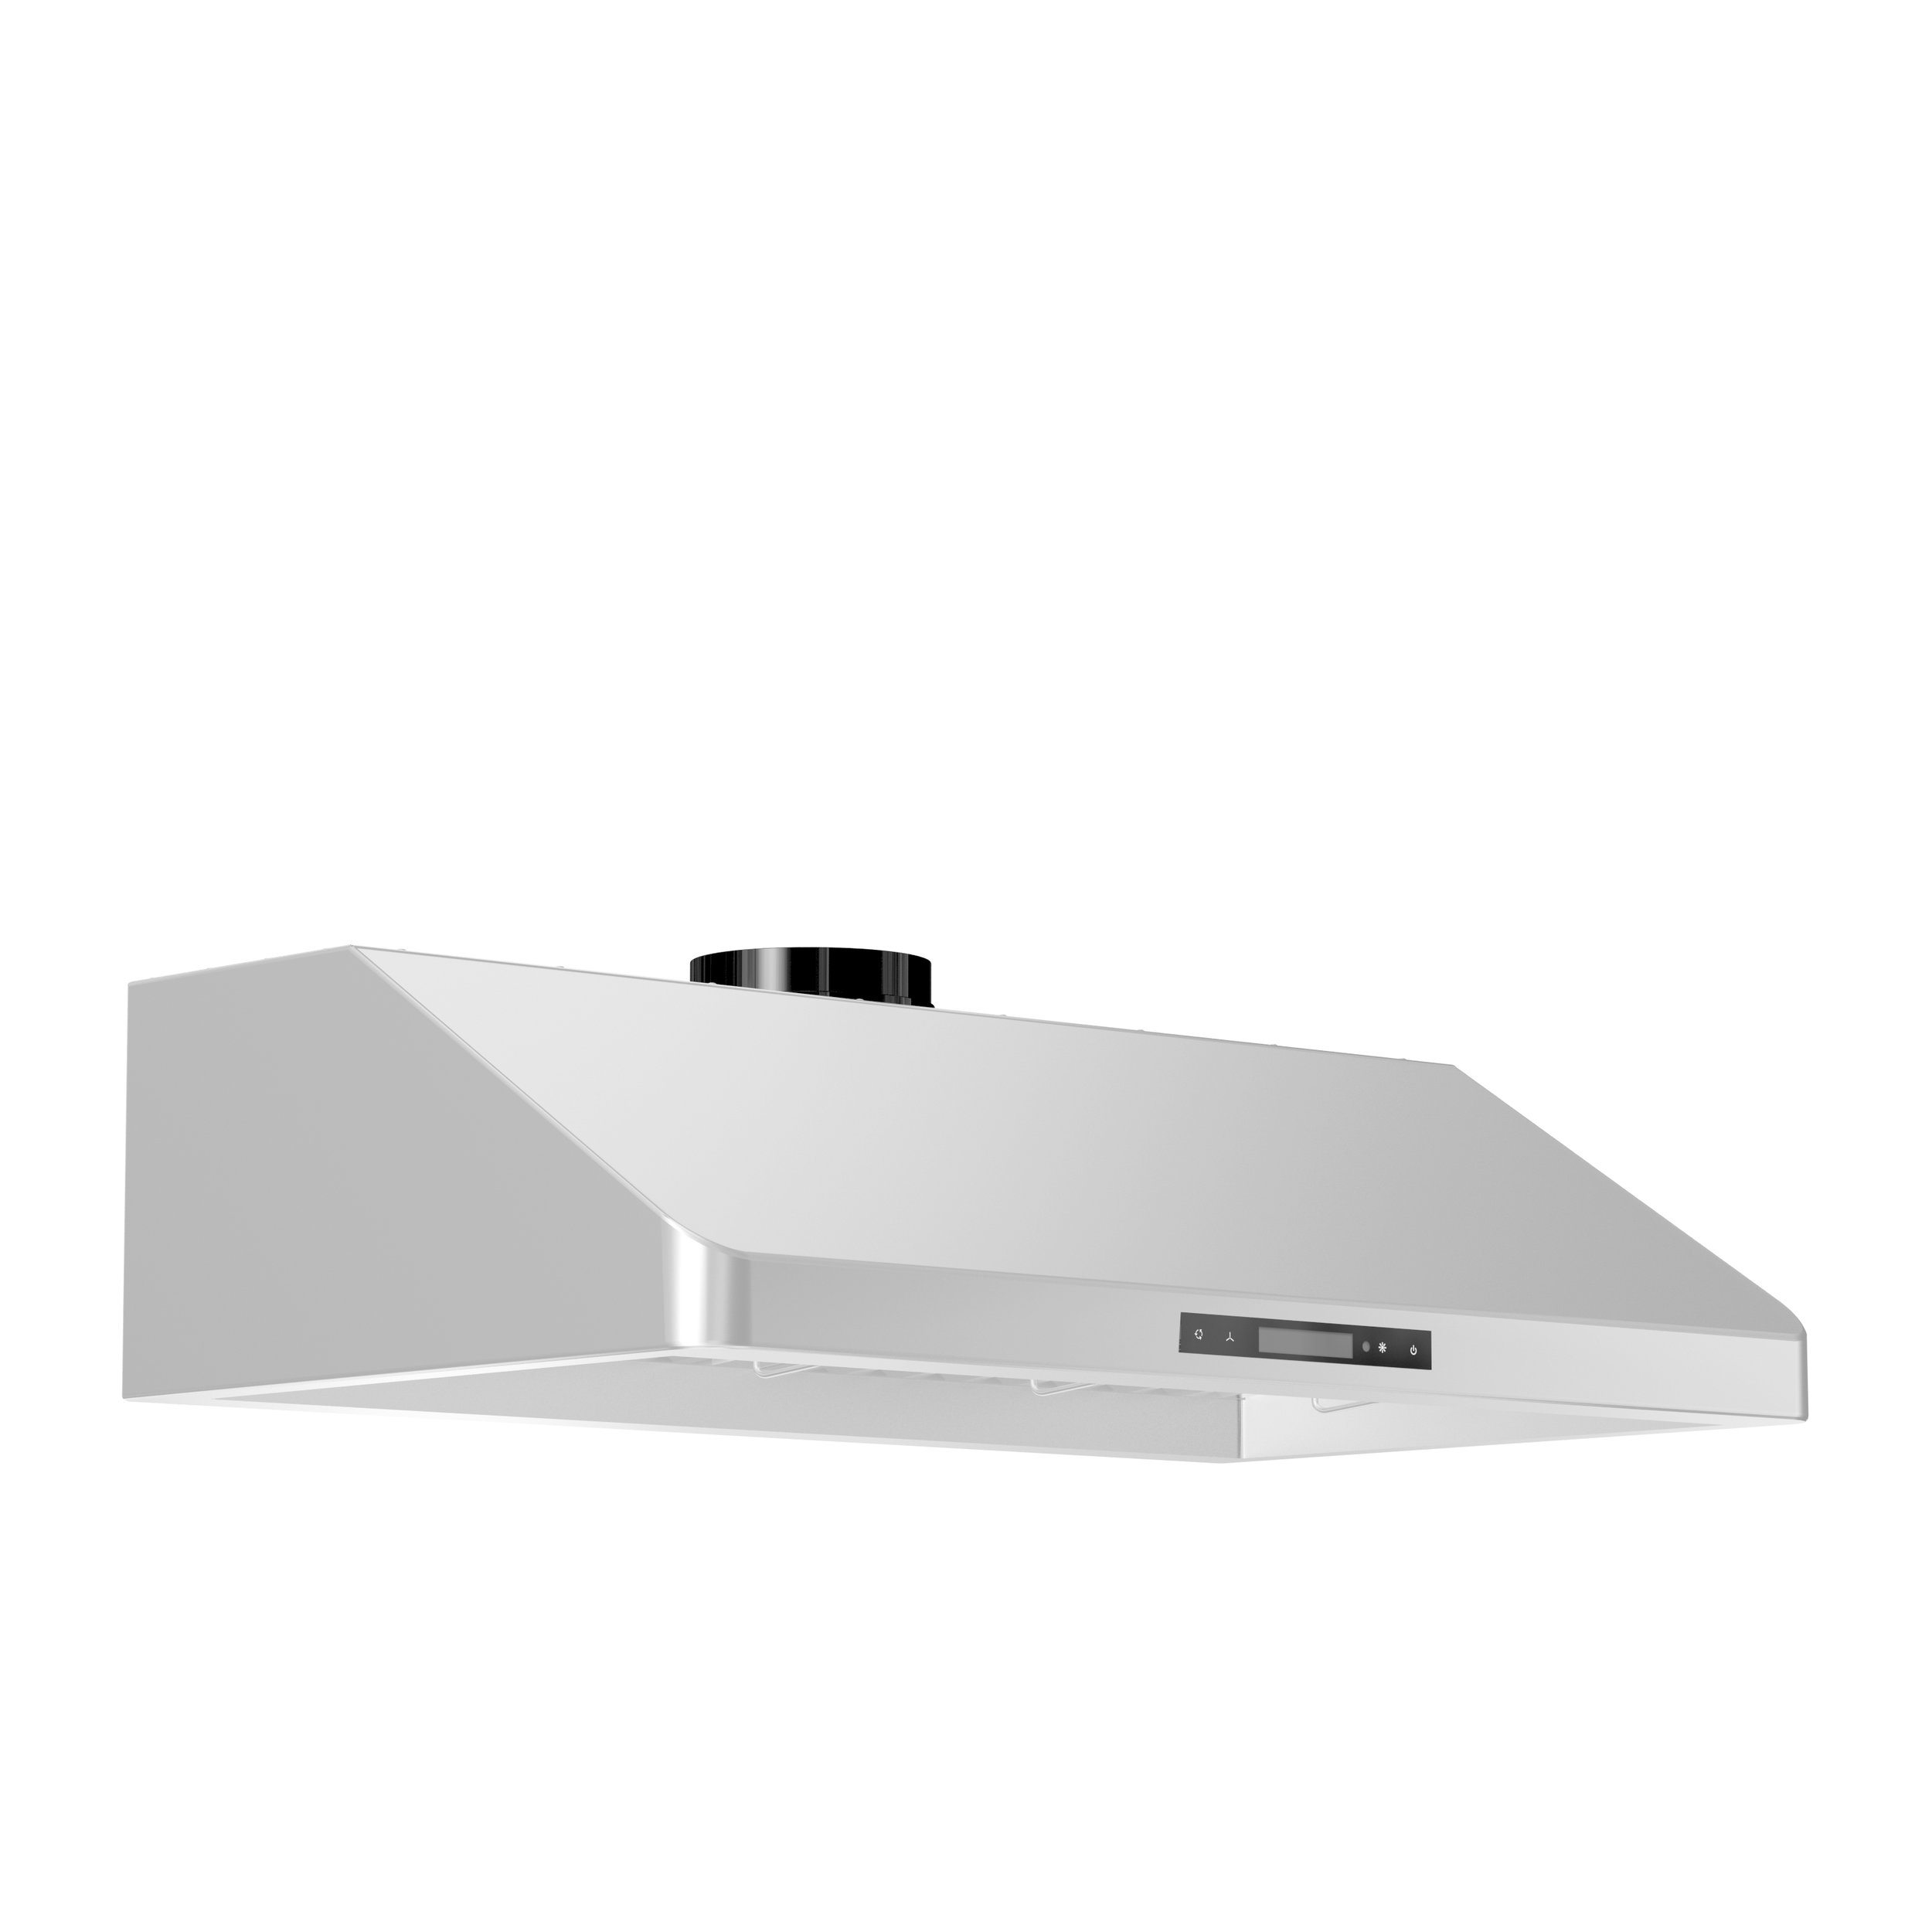 zline-stainless-steel-under-cabinet-range-hood-619-main.jpeg